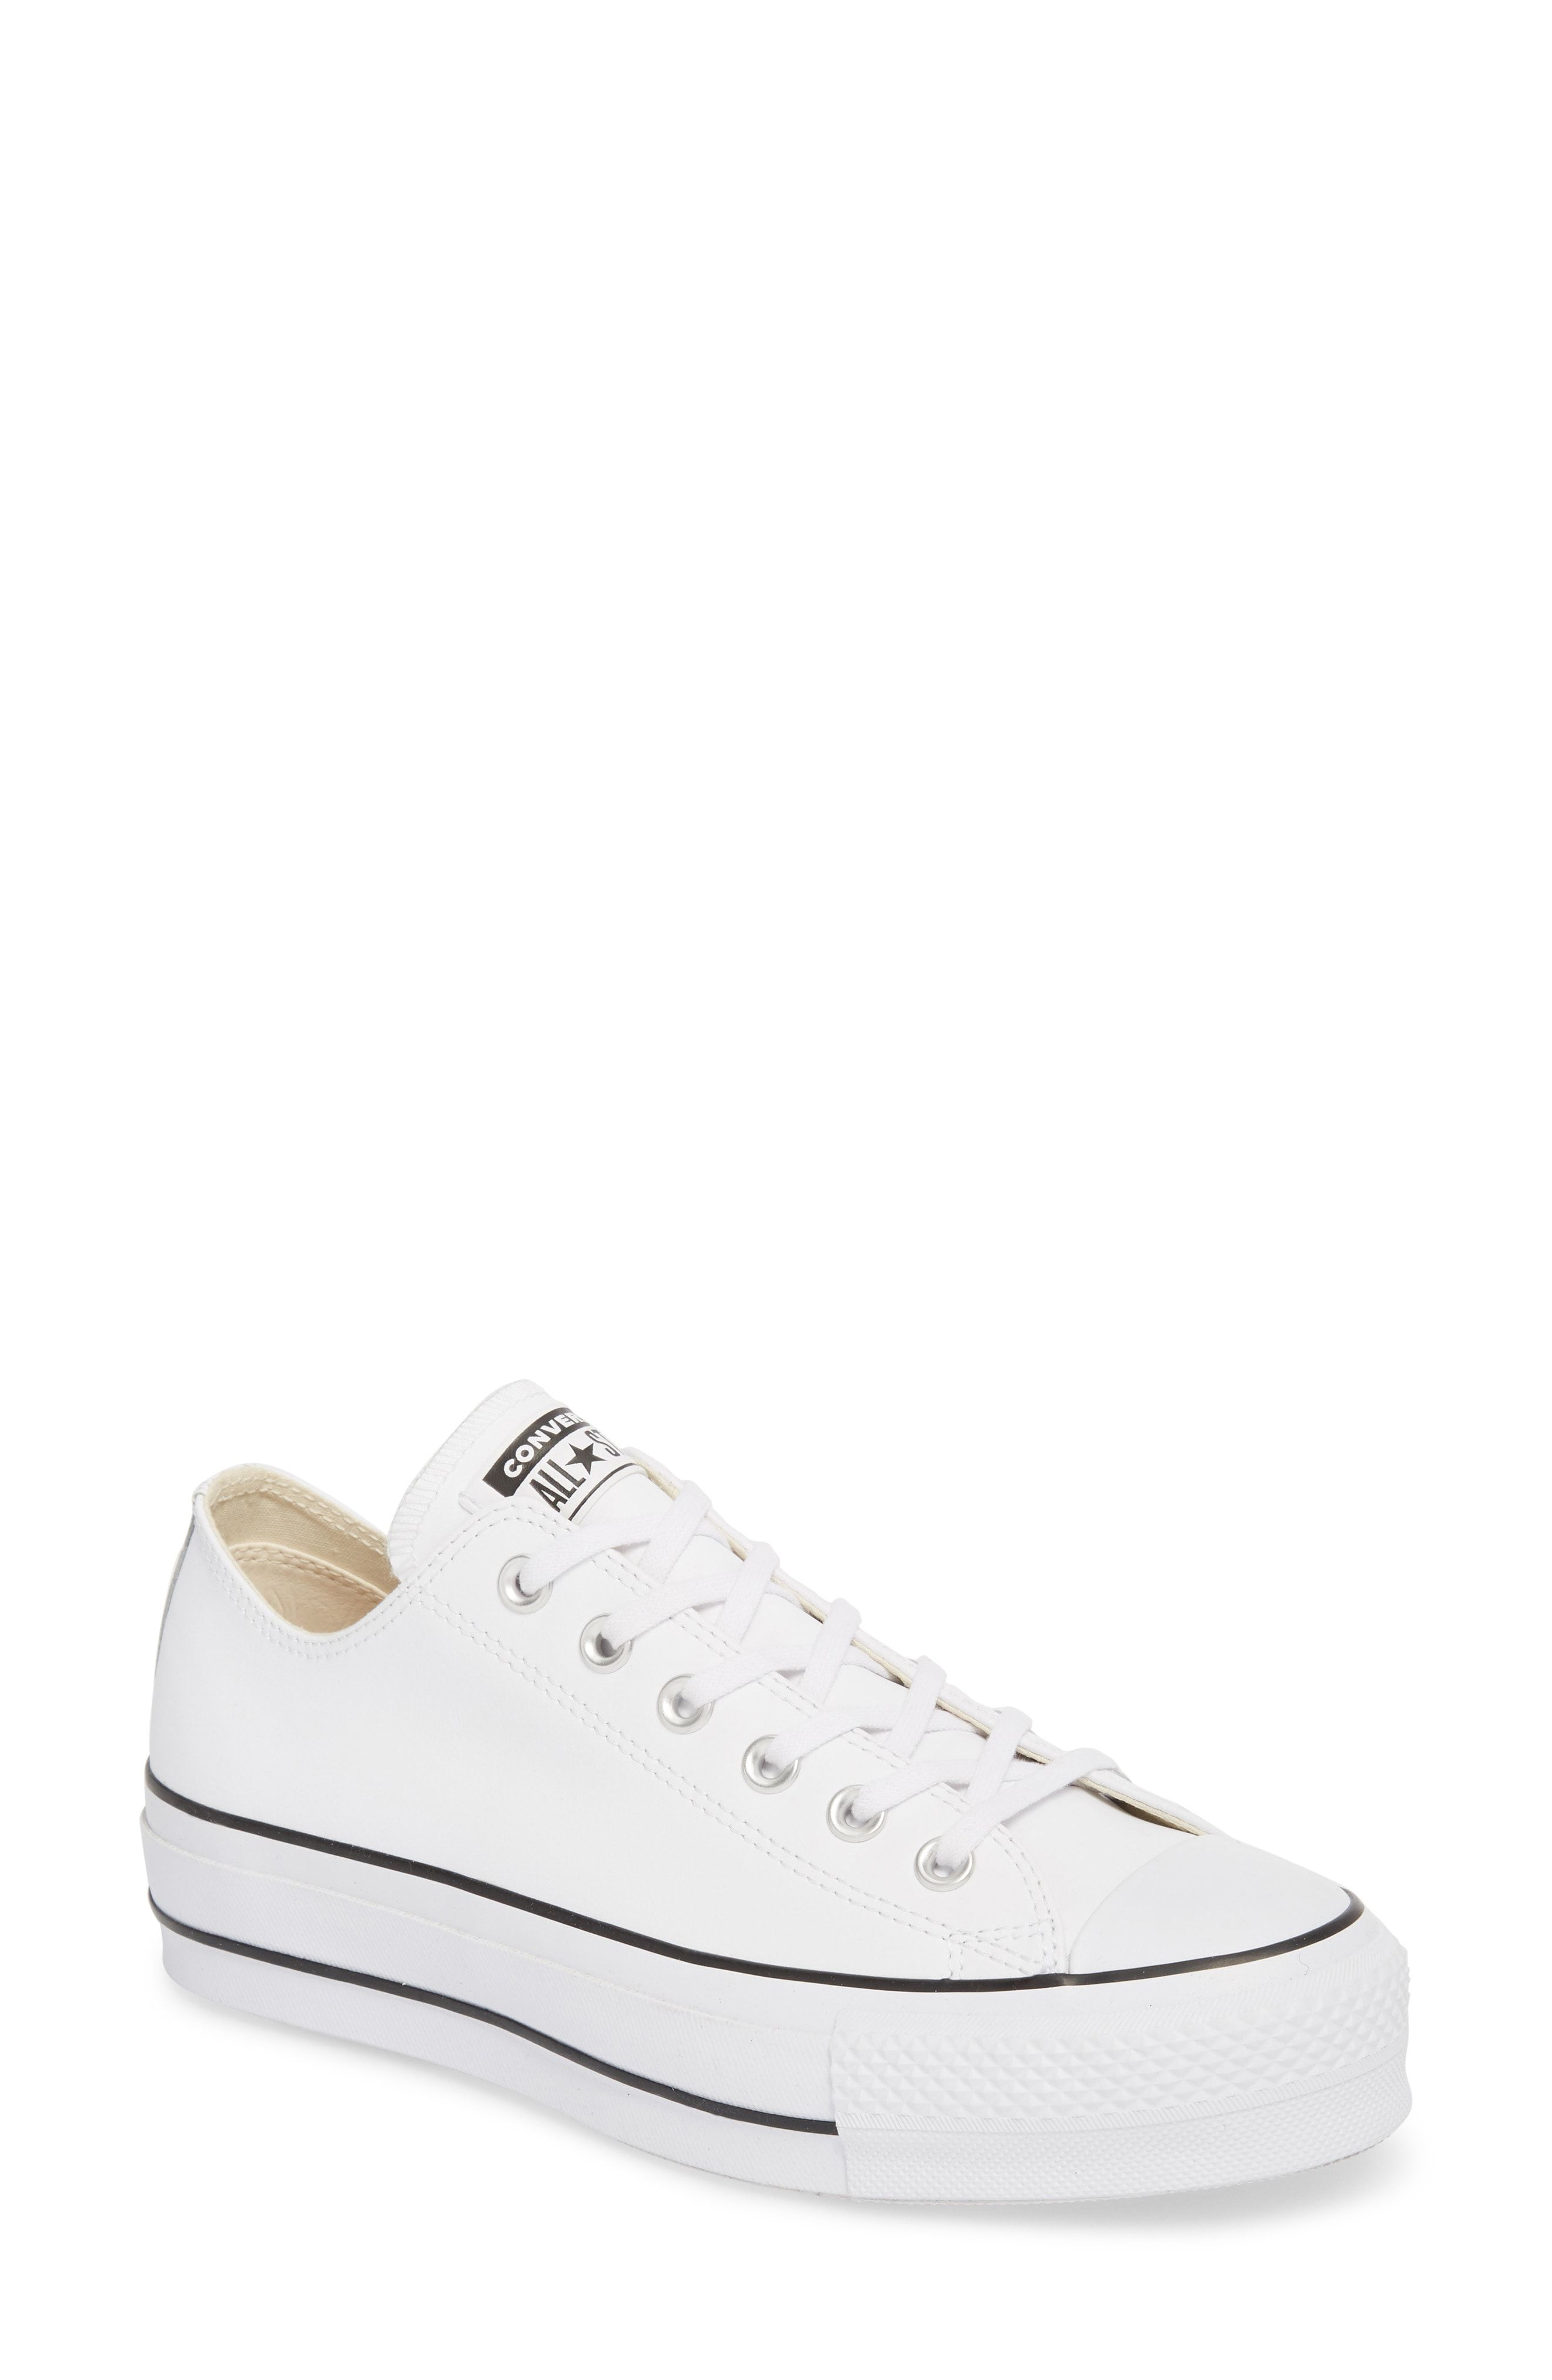 dfb531be1dfe Converse Chuck Taylor® All Star® Platform Sneaker (Women)